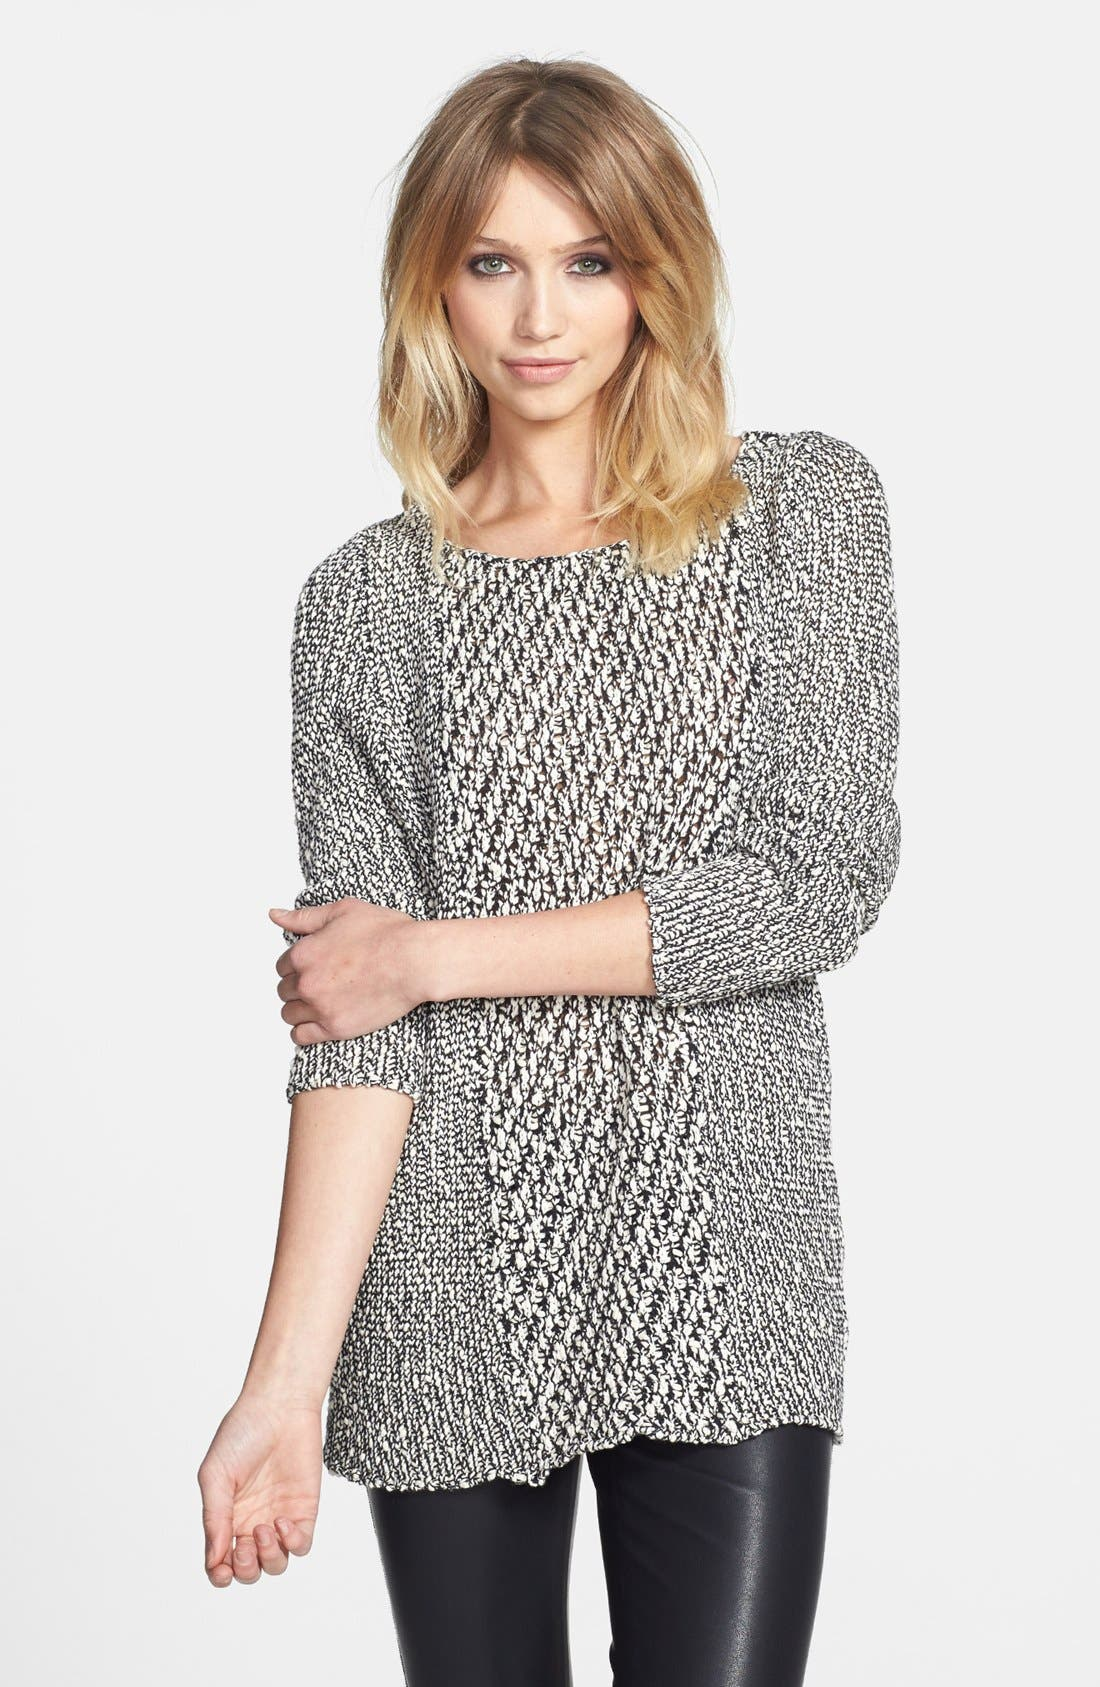 Main Image - Knot Sisters 'Dre' Mixed Knit Tunic Sweater